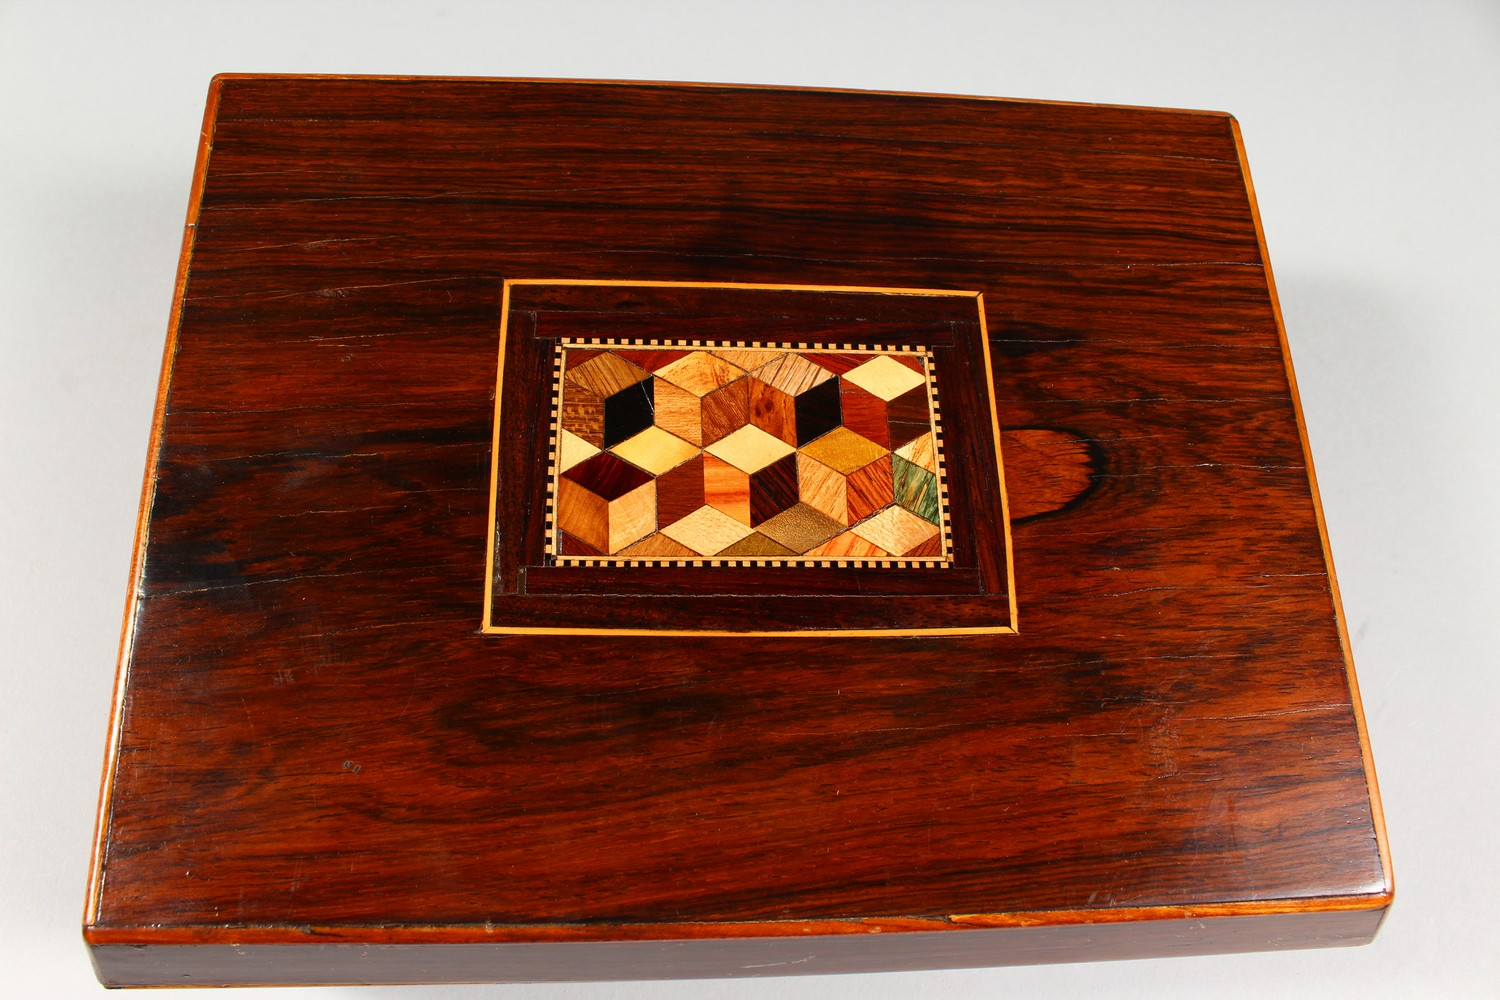 Lot 1482 - A GOOD 19TH CENTURY TUNBRIDGE WARE SEWING BOX, the top with parquetry inlay, opening to reveal